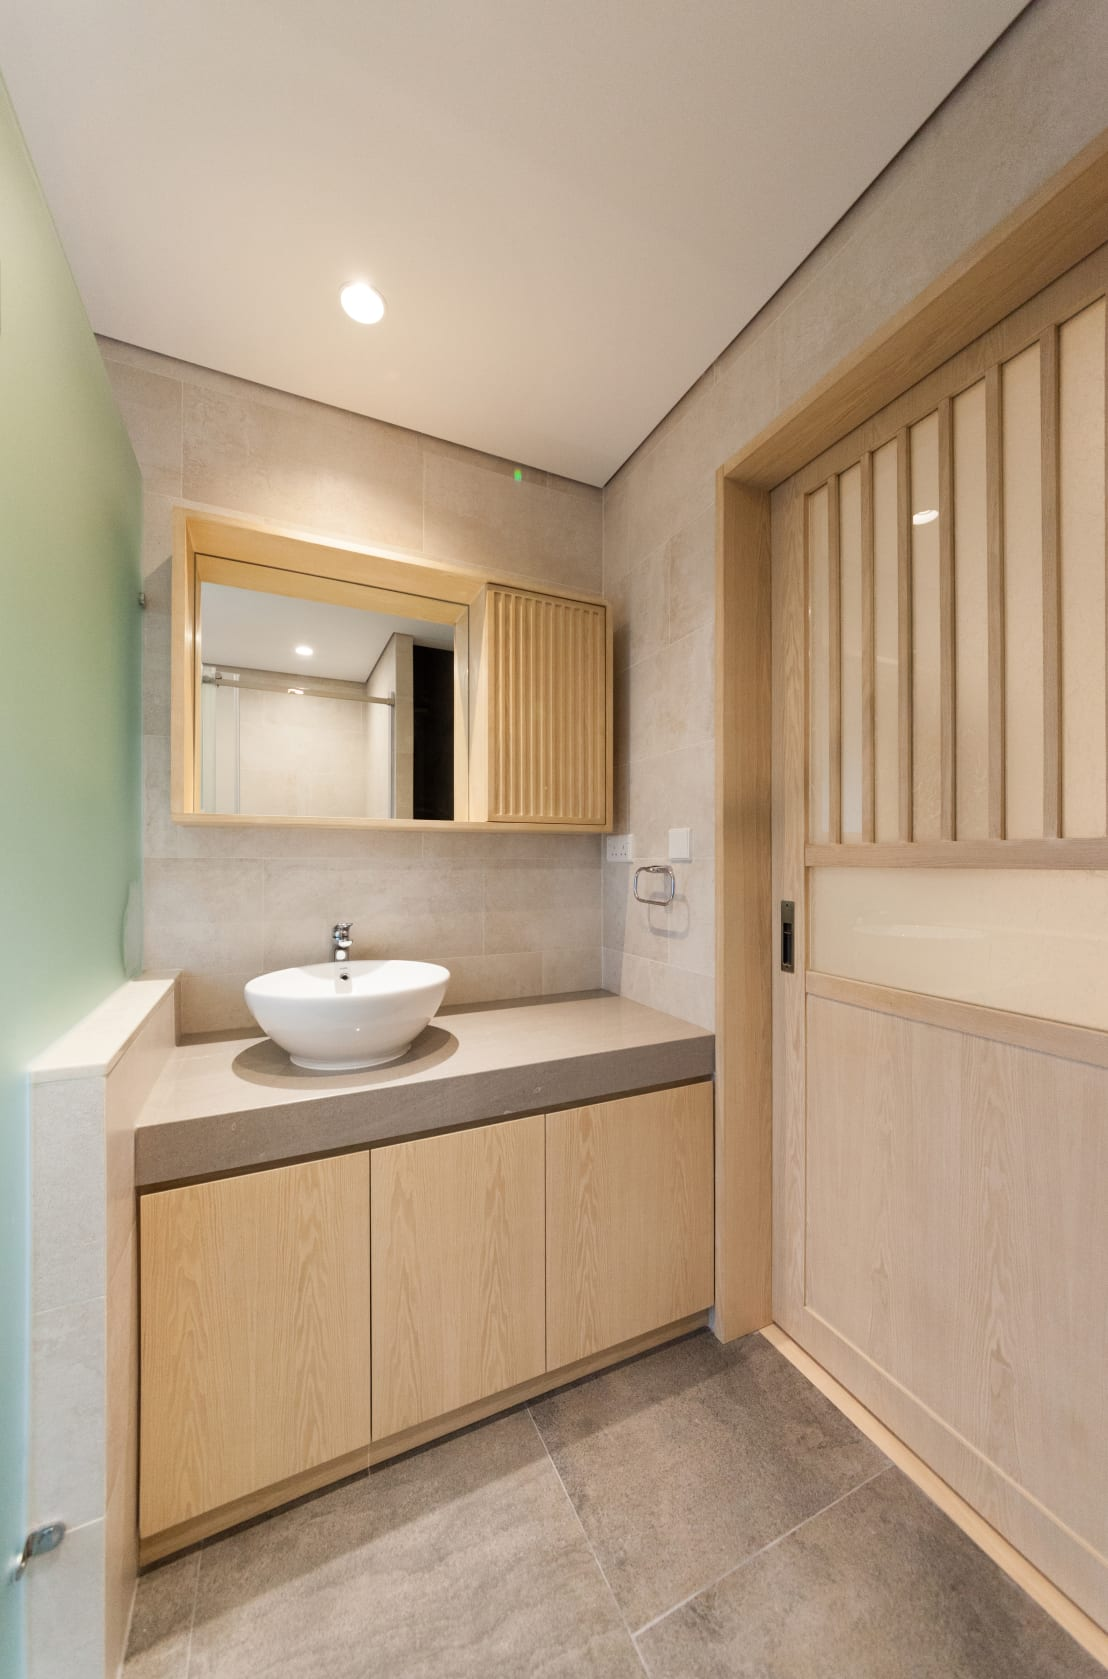 Arctitudesign kc 39 s residence homify for Bathroom design and fit